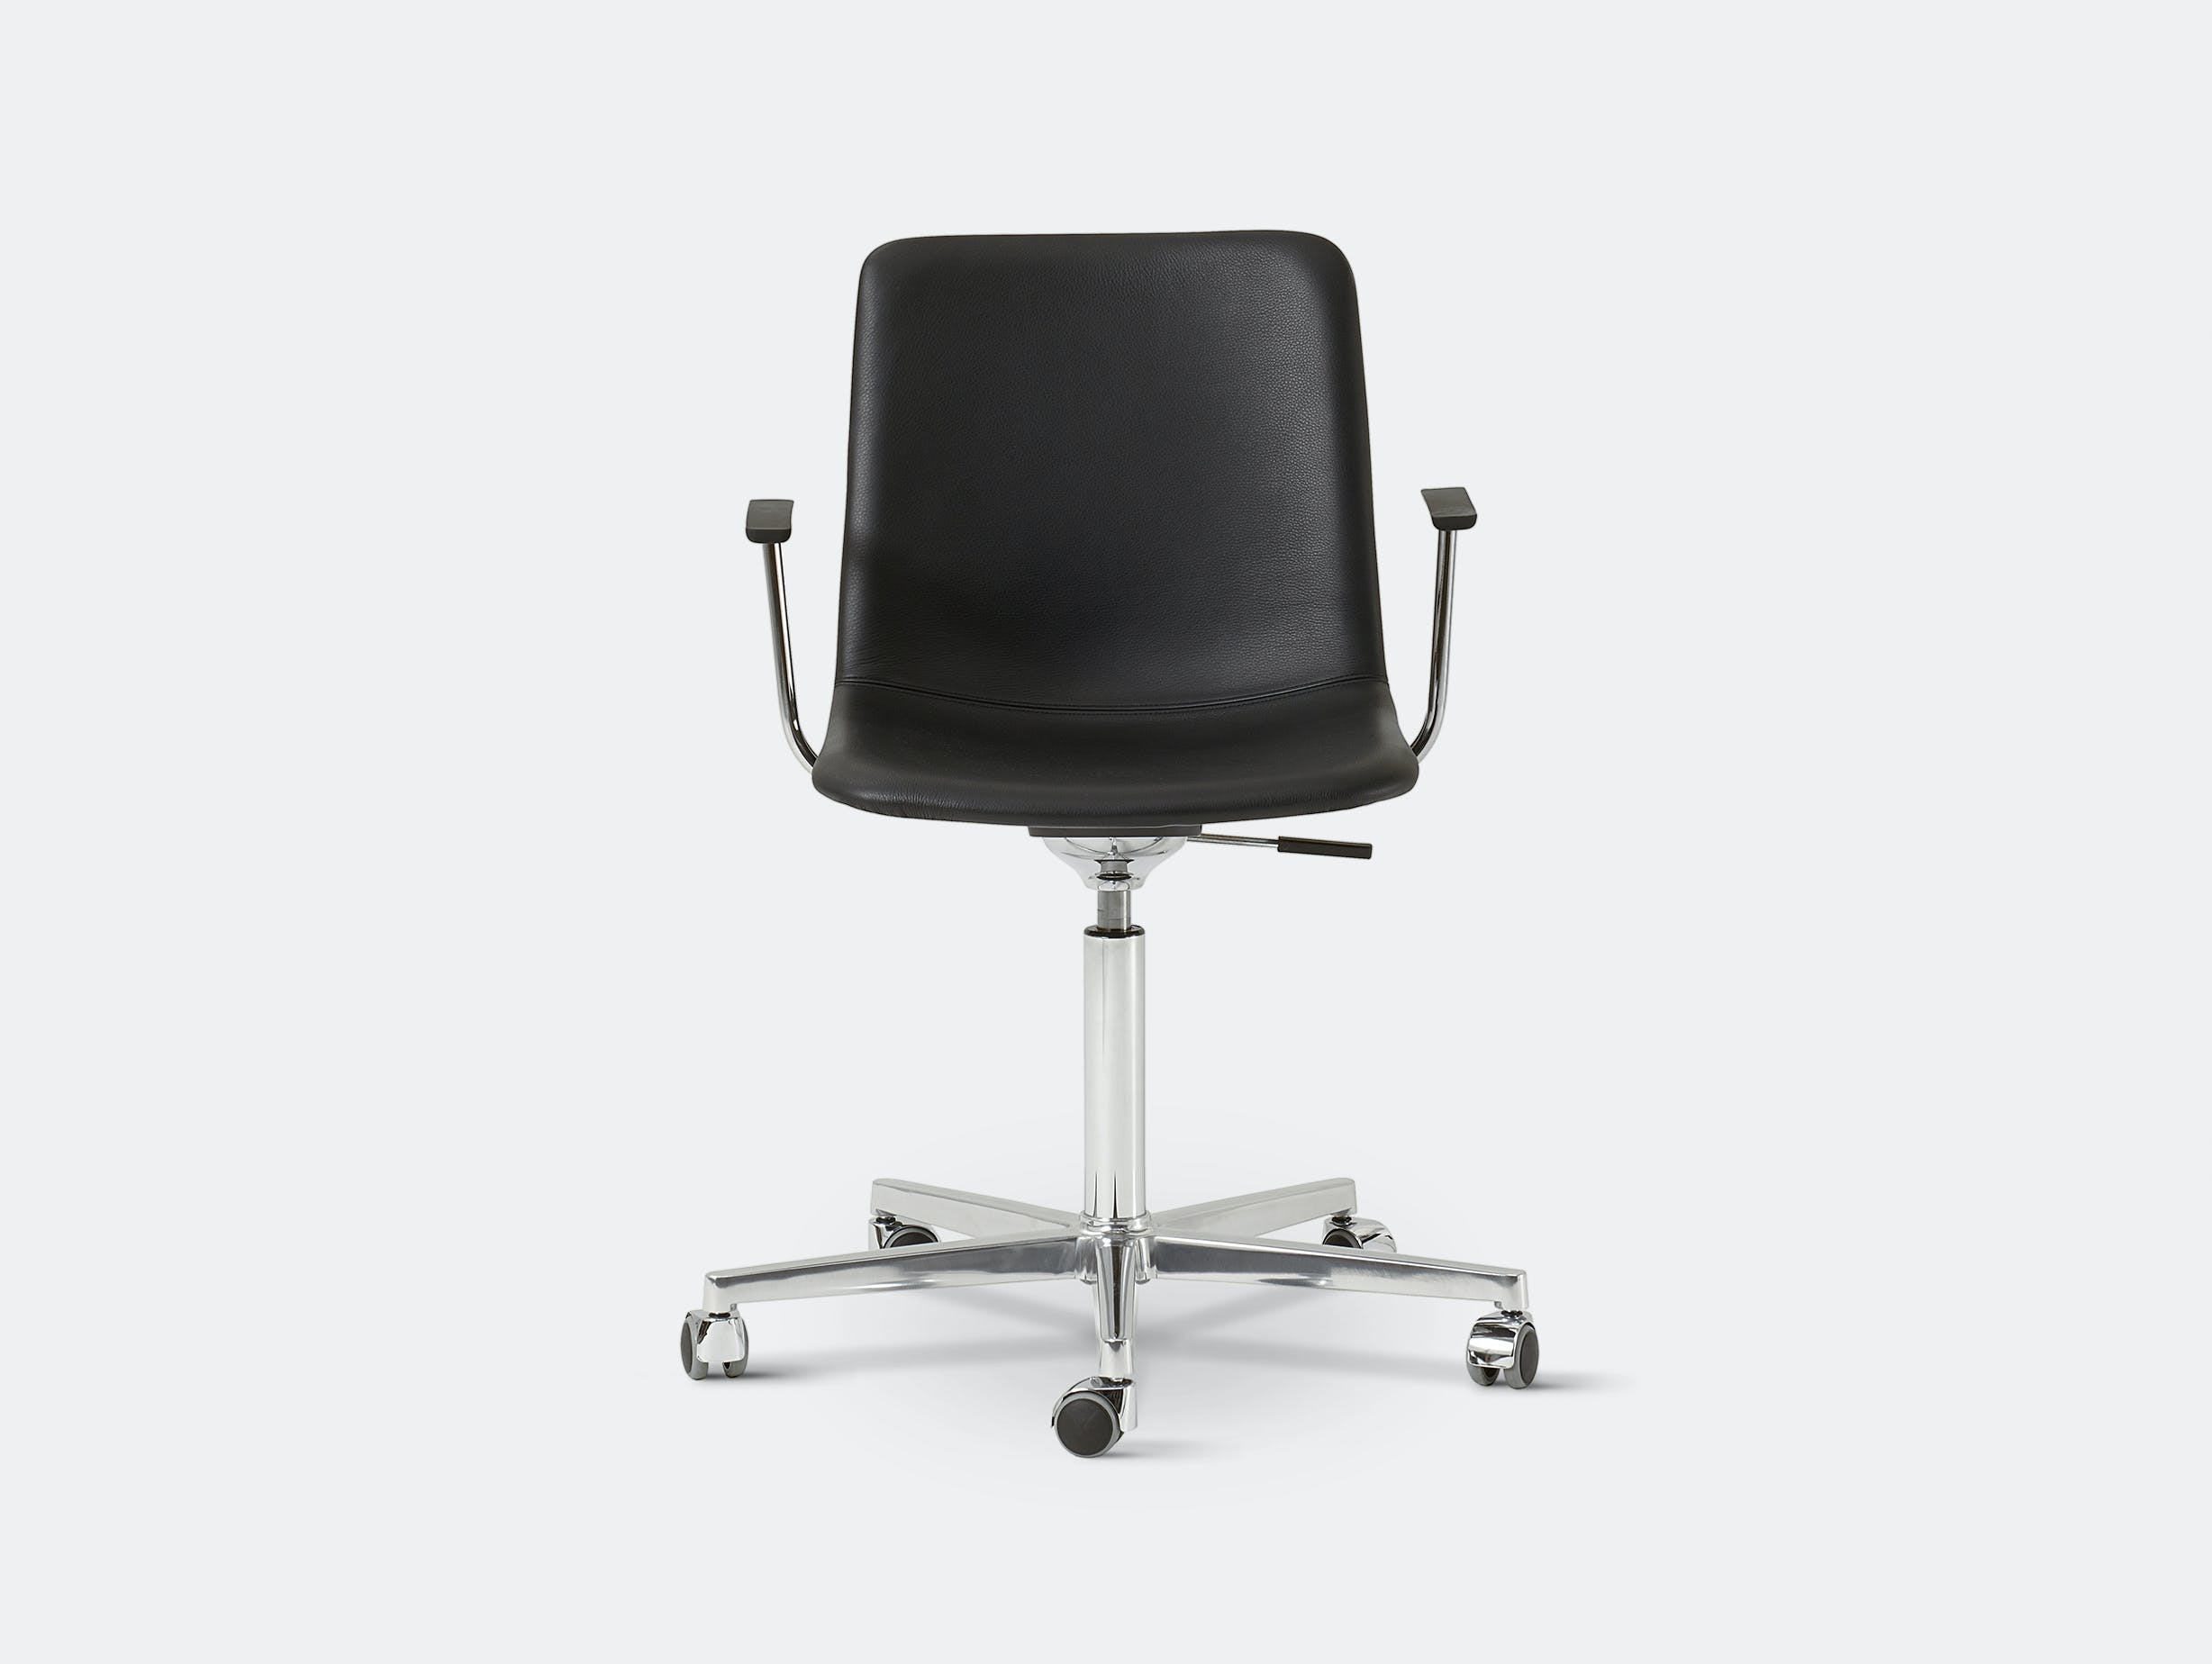 Fredericia pato chair swivel castor base